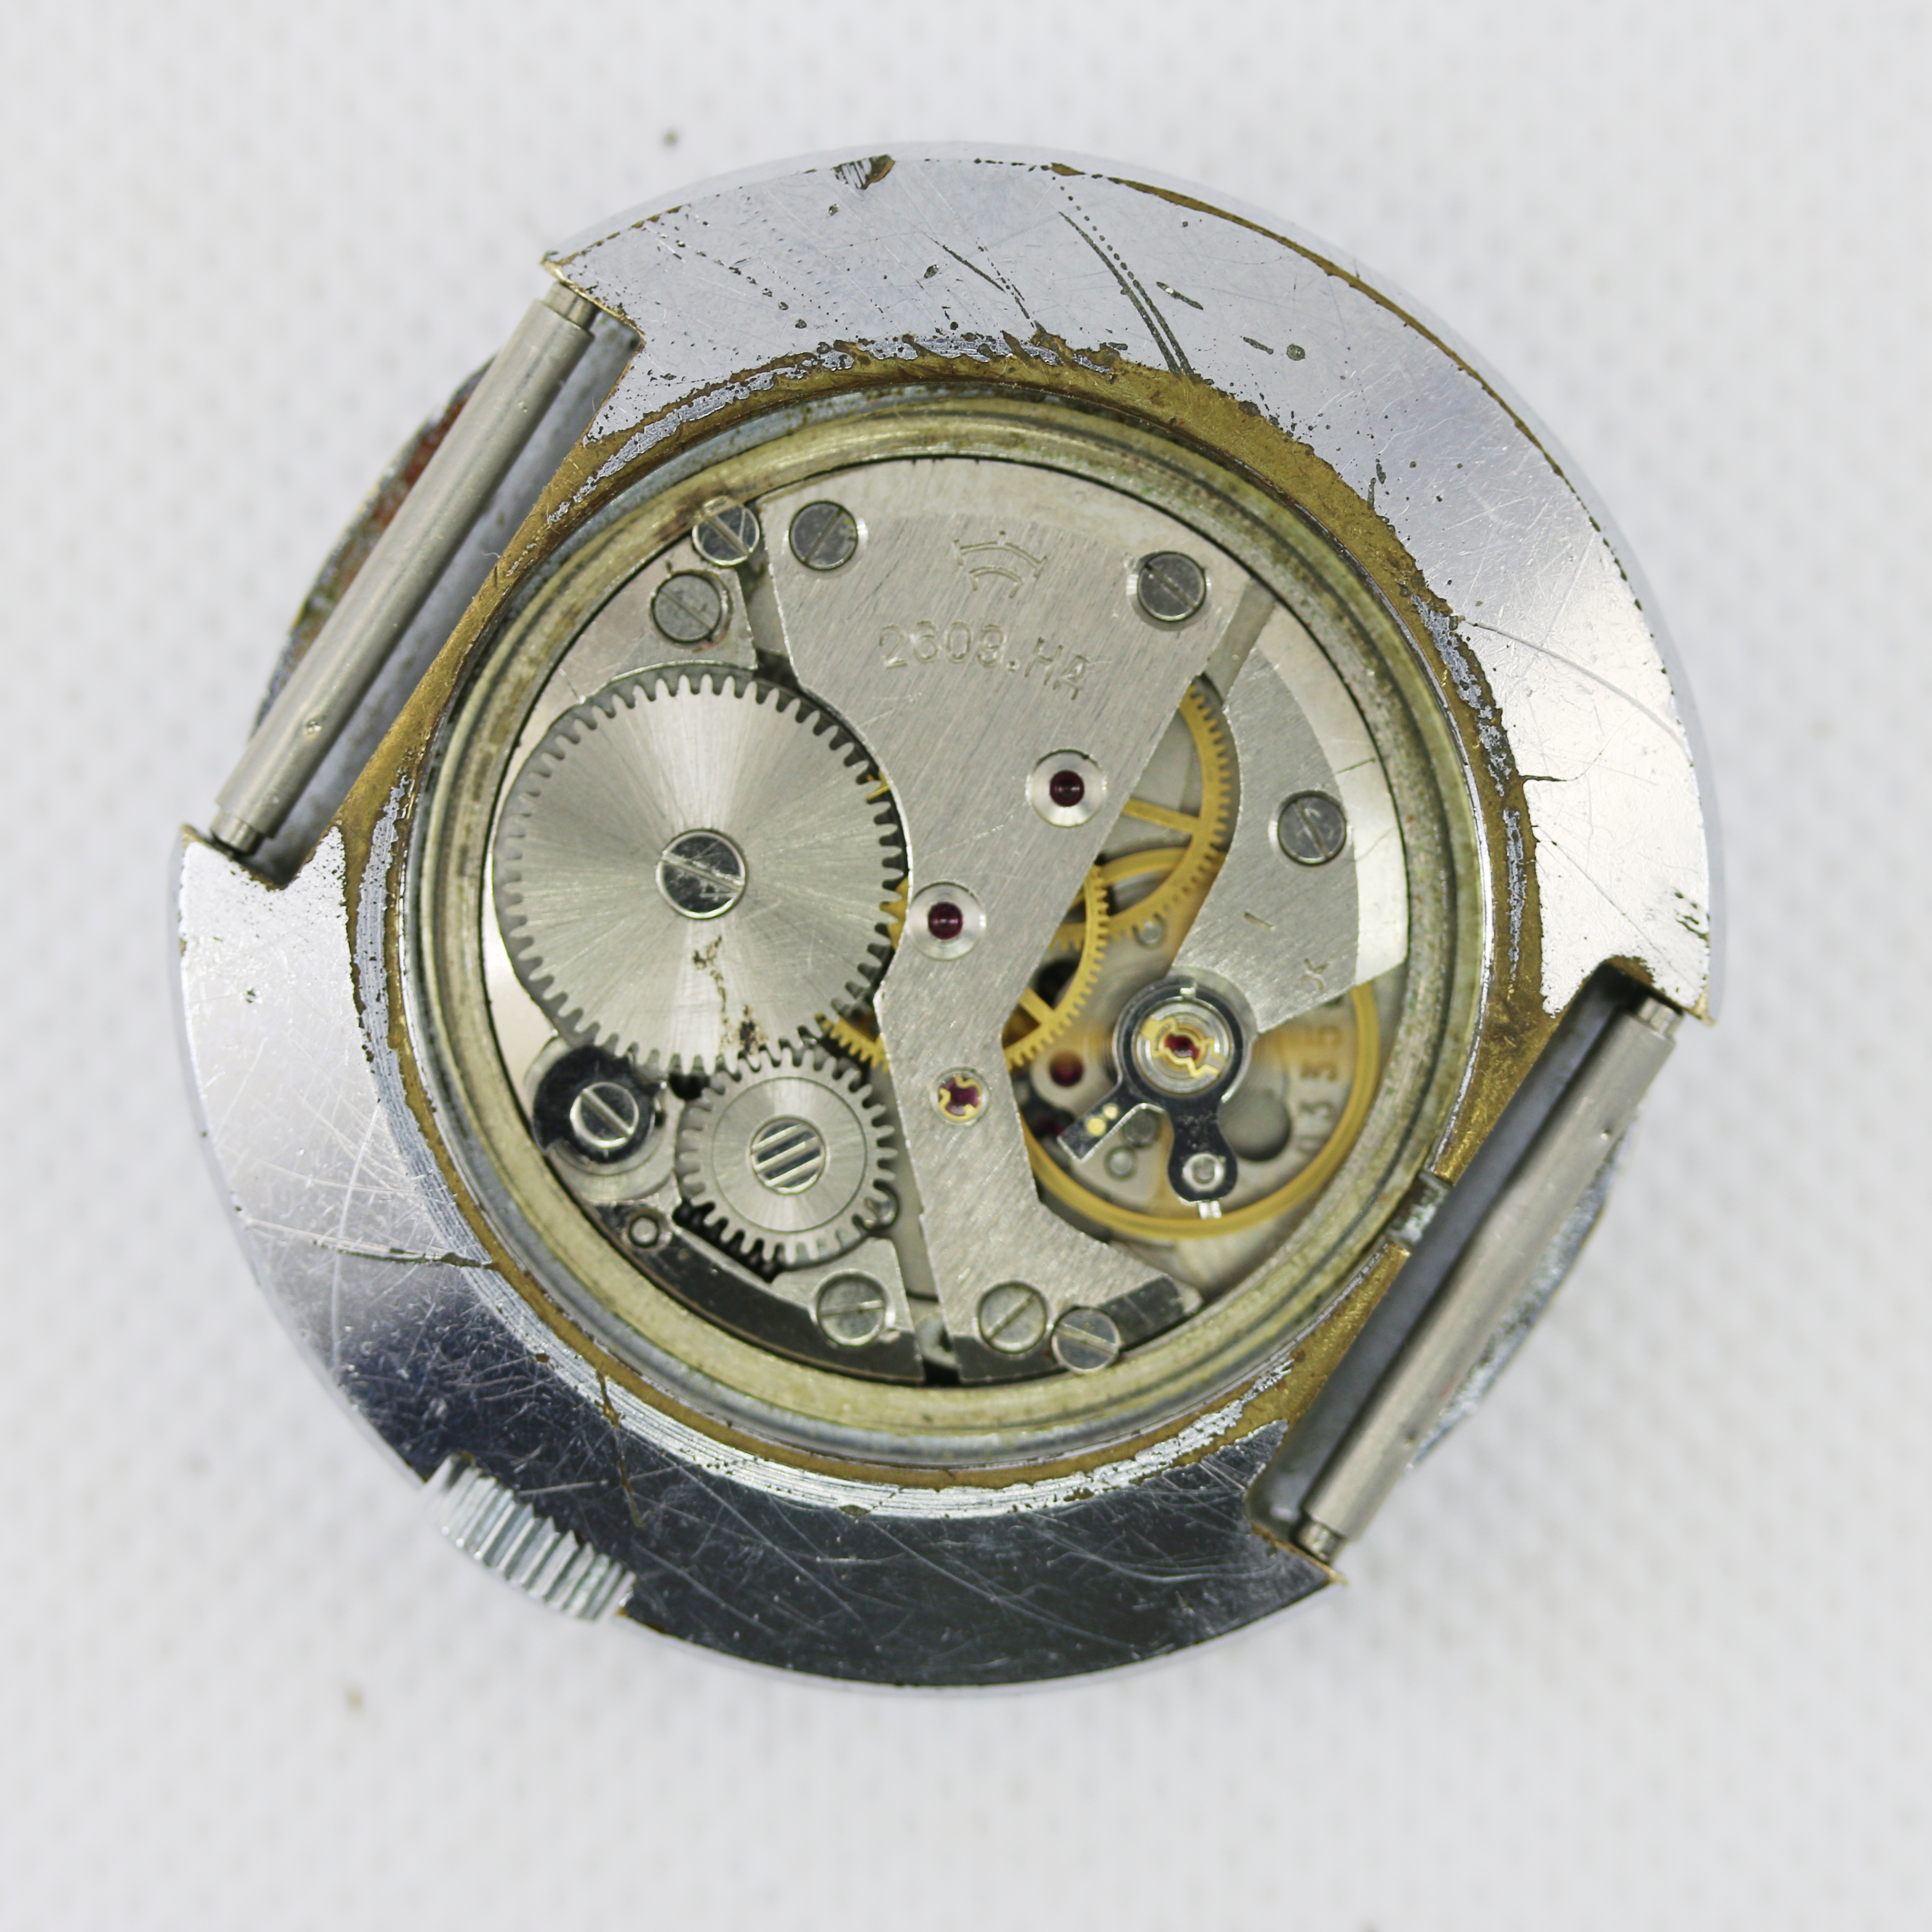 fullxfull zoom vintage mechanical blind listing the wrist blinds il raketa watches men for ussr watch